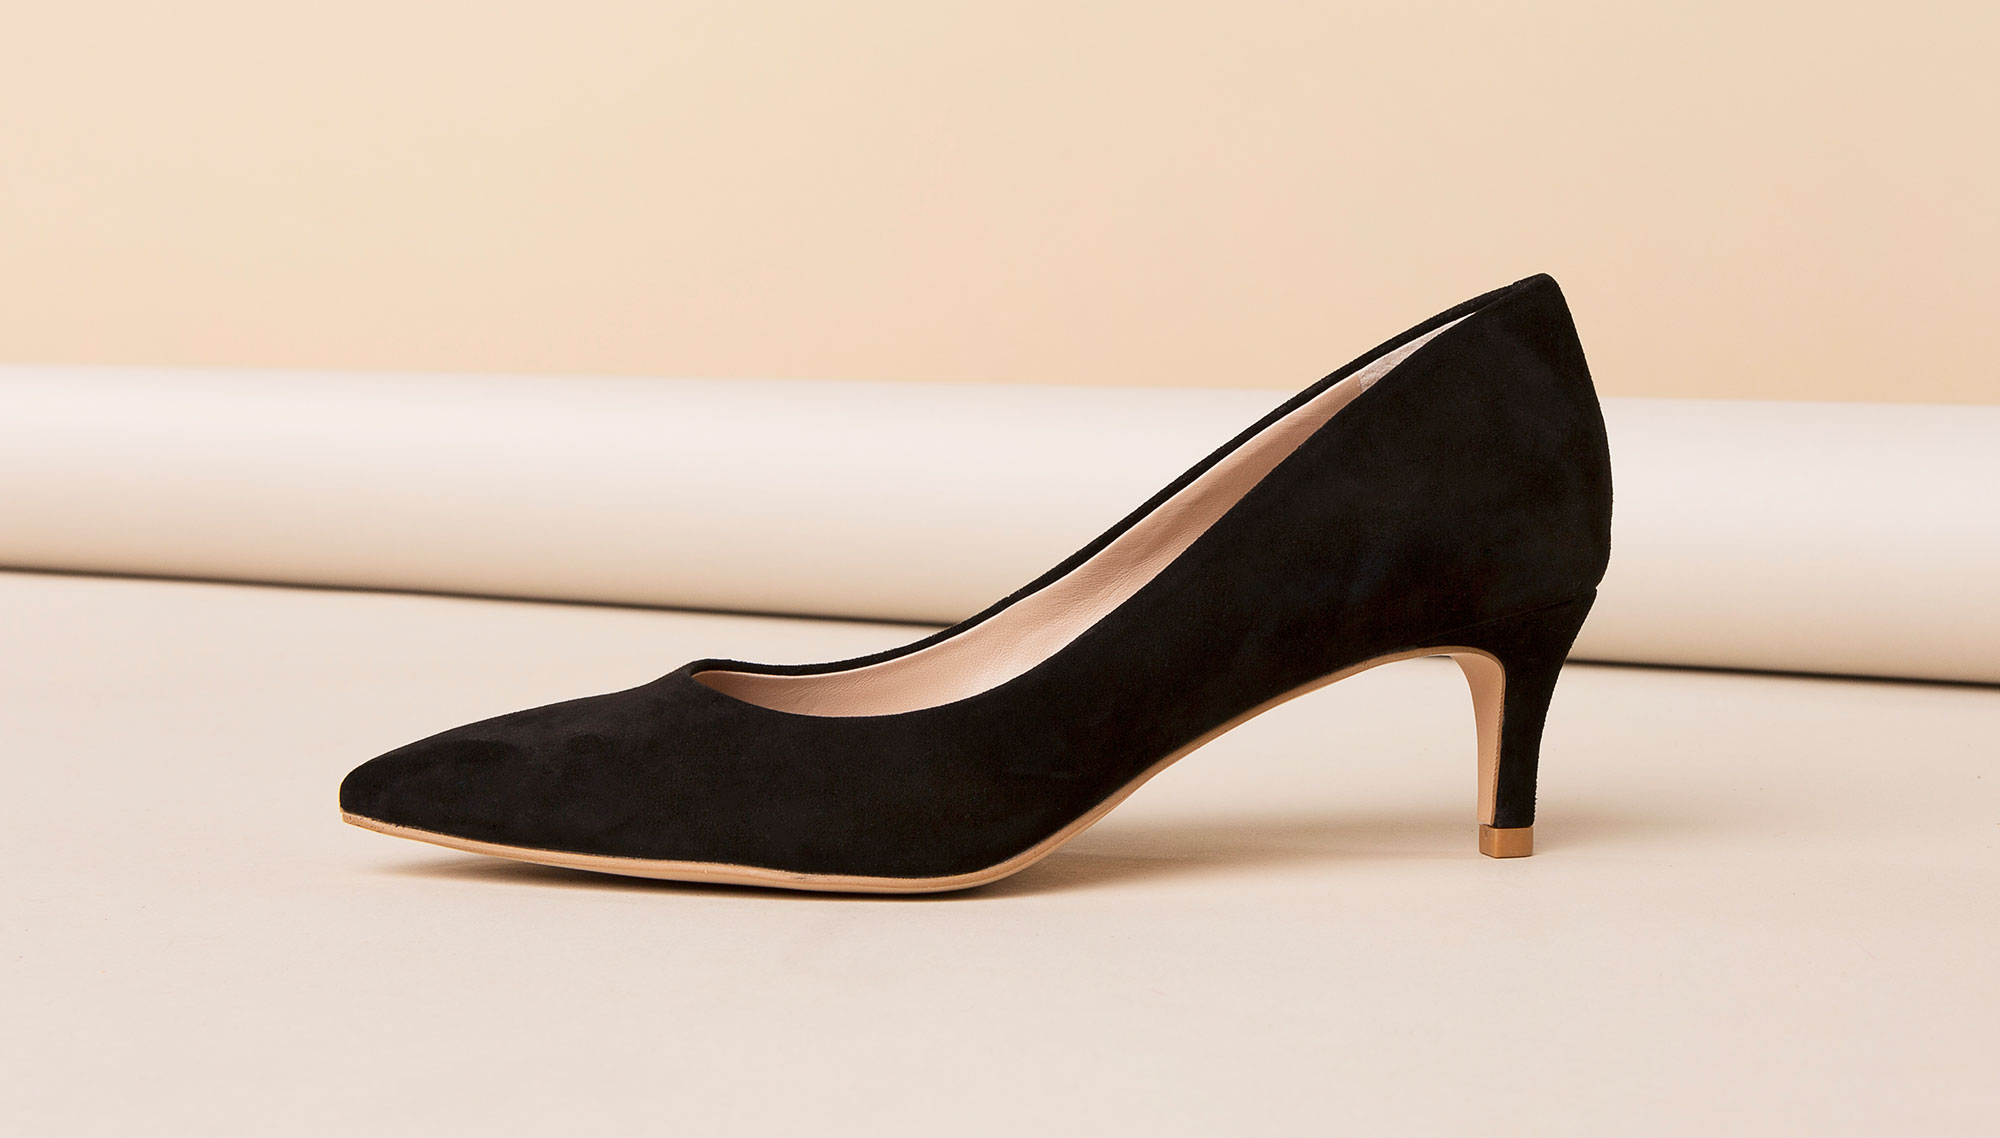 Black pumps to wear to a business formal office